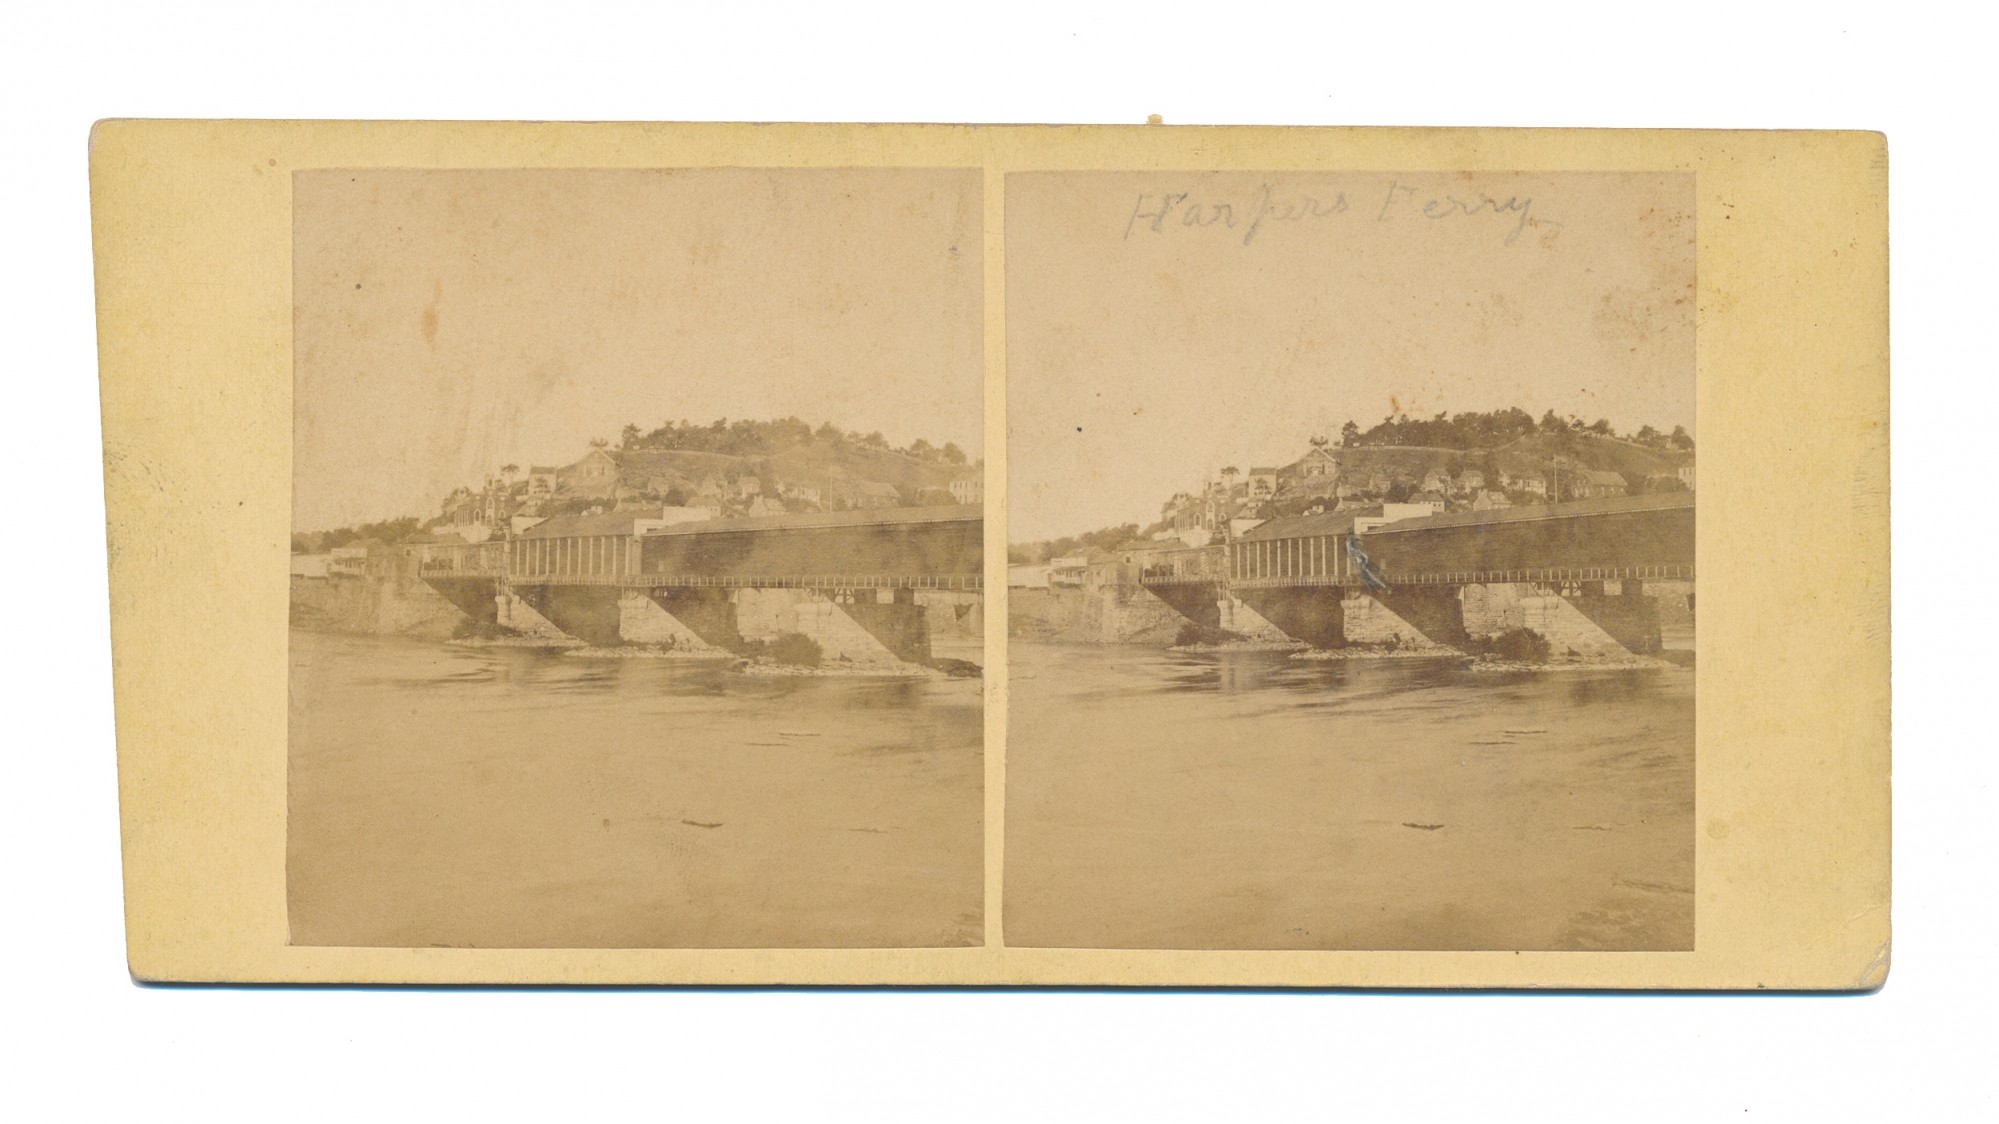 STEREO VIEW OF HARPERS FERRY